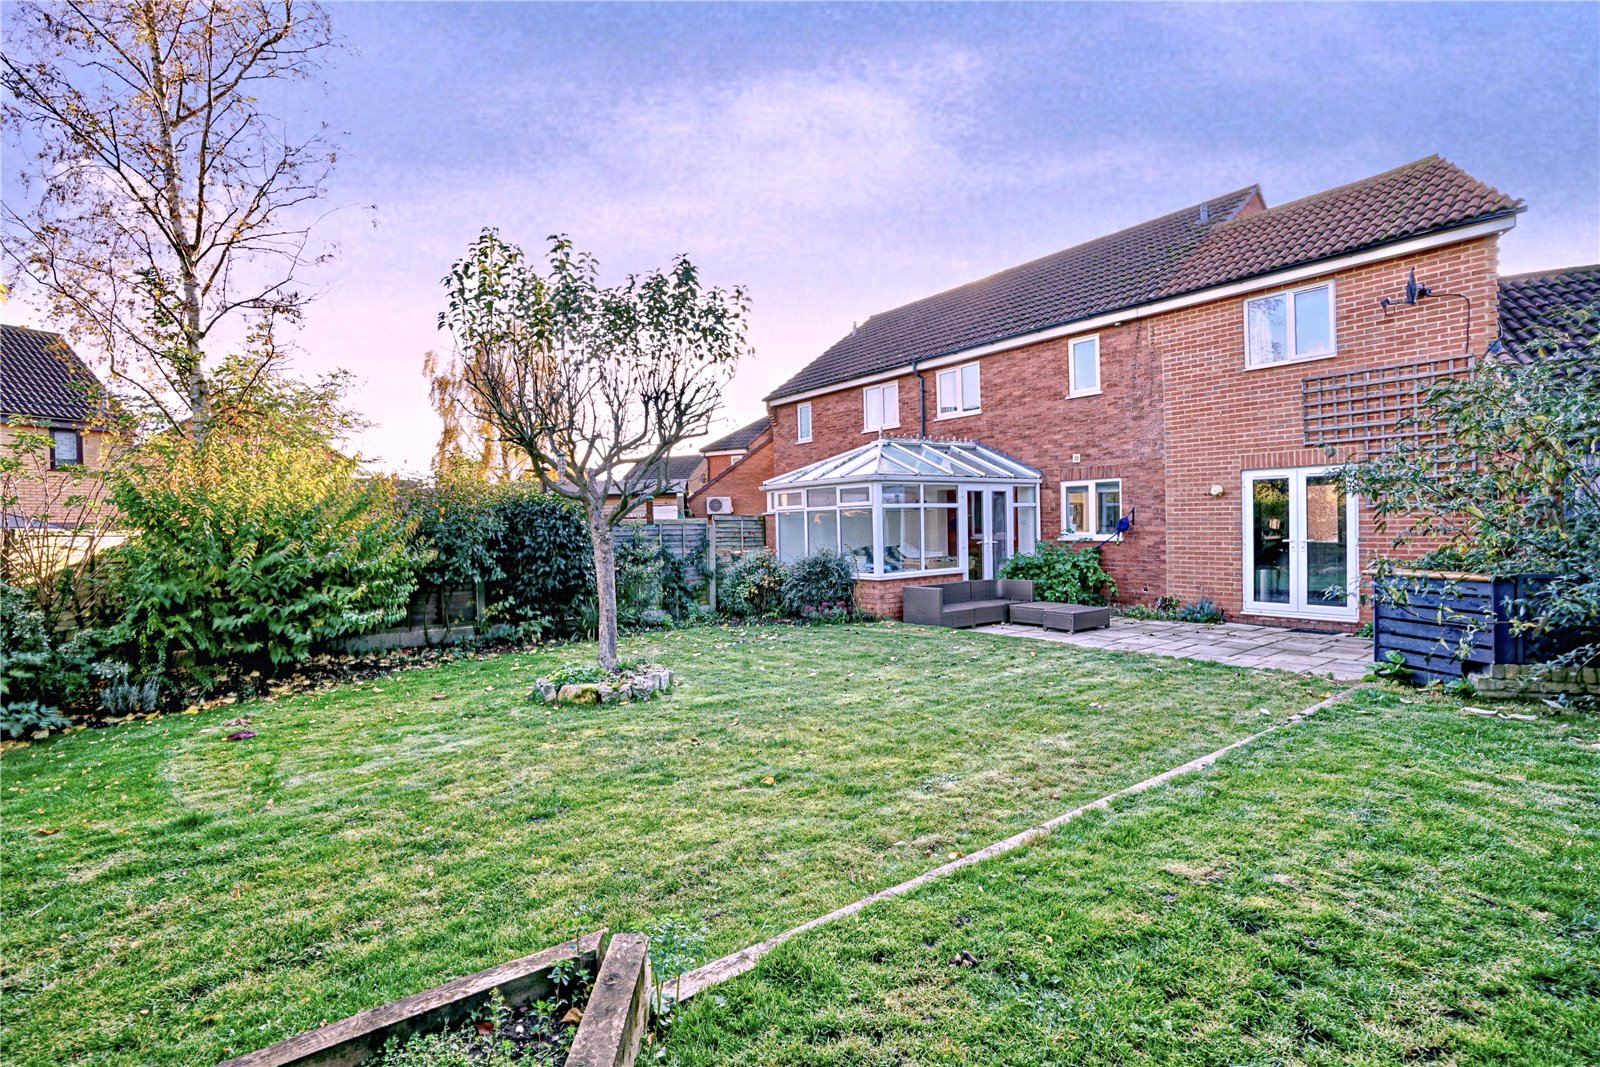 4 bed house for sale in Codrington Court, Eaton Socon  - Property Image 9